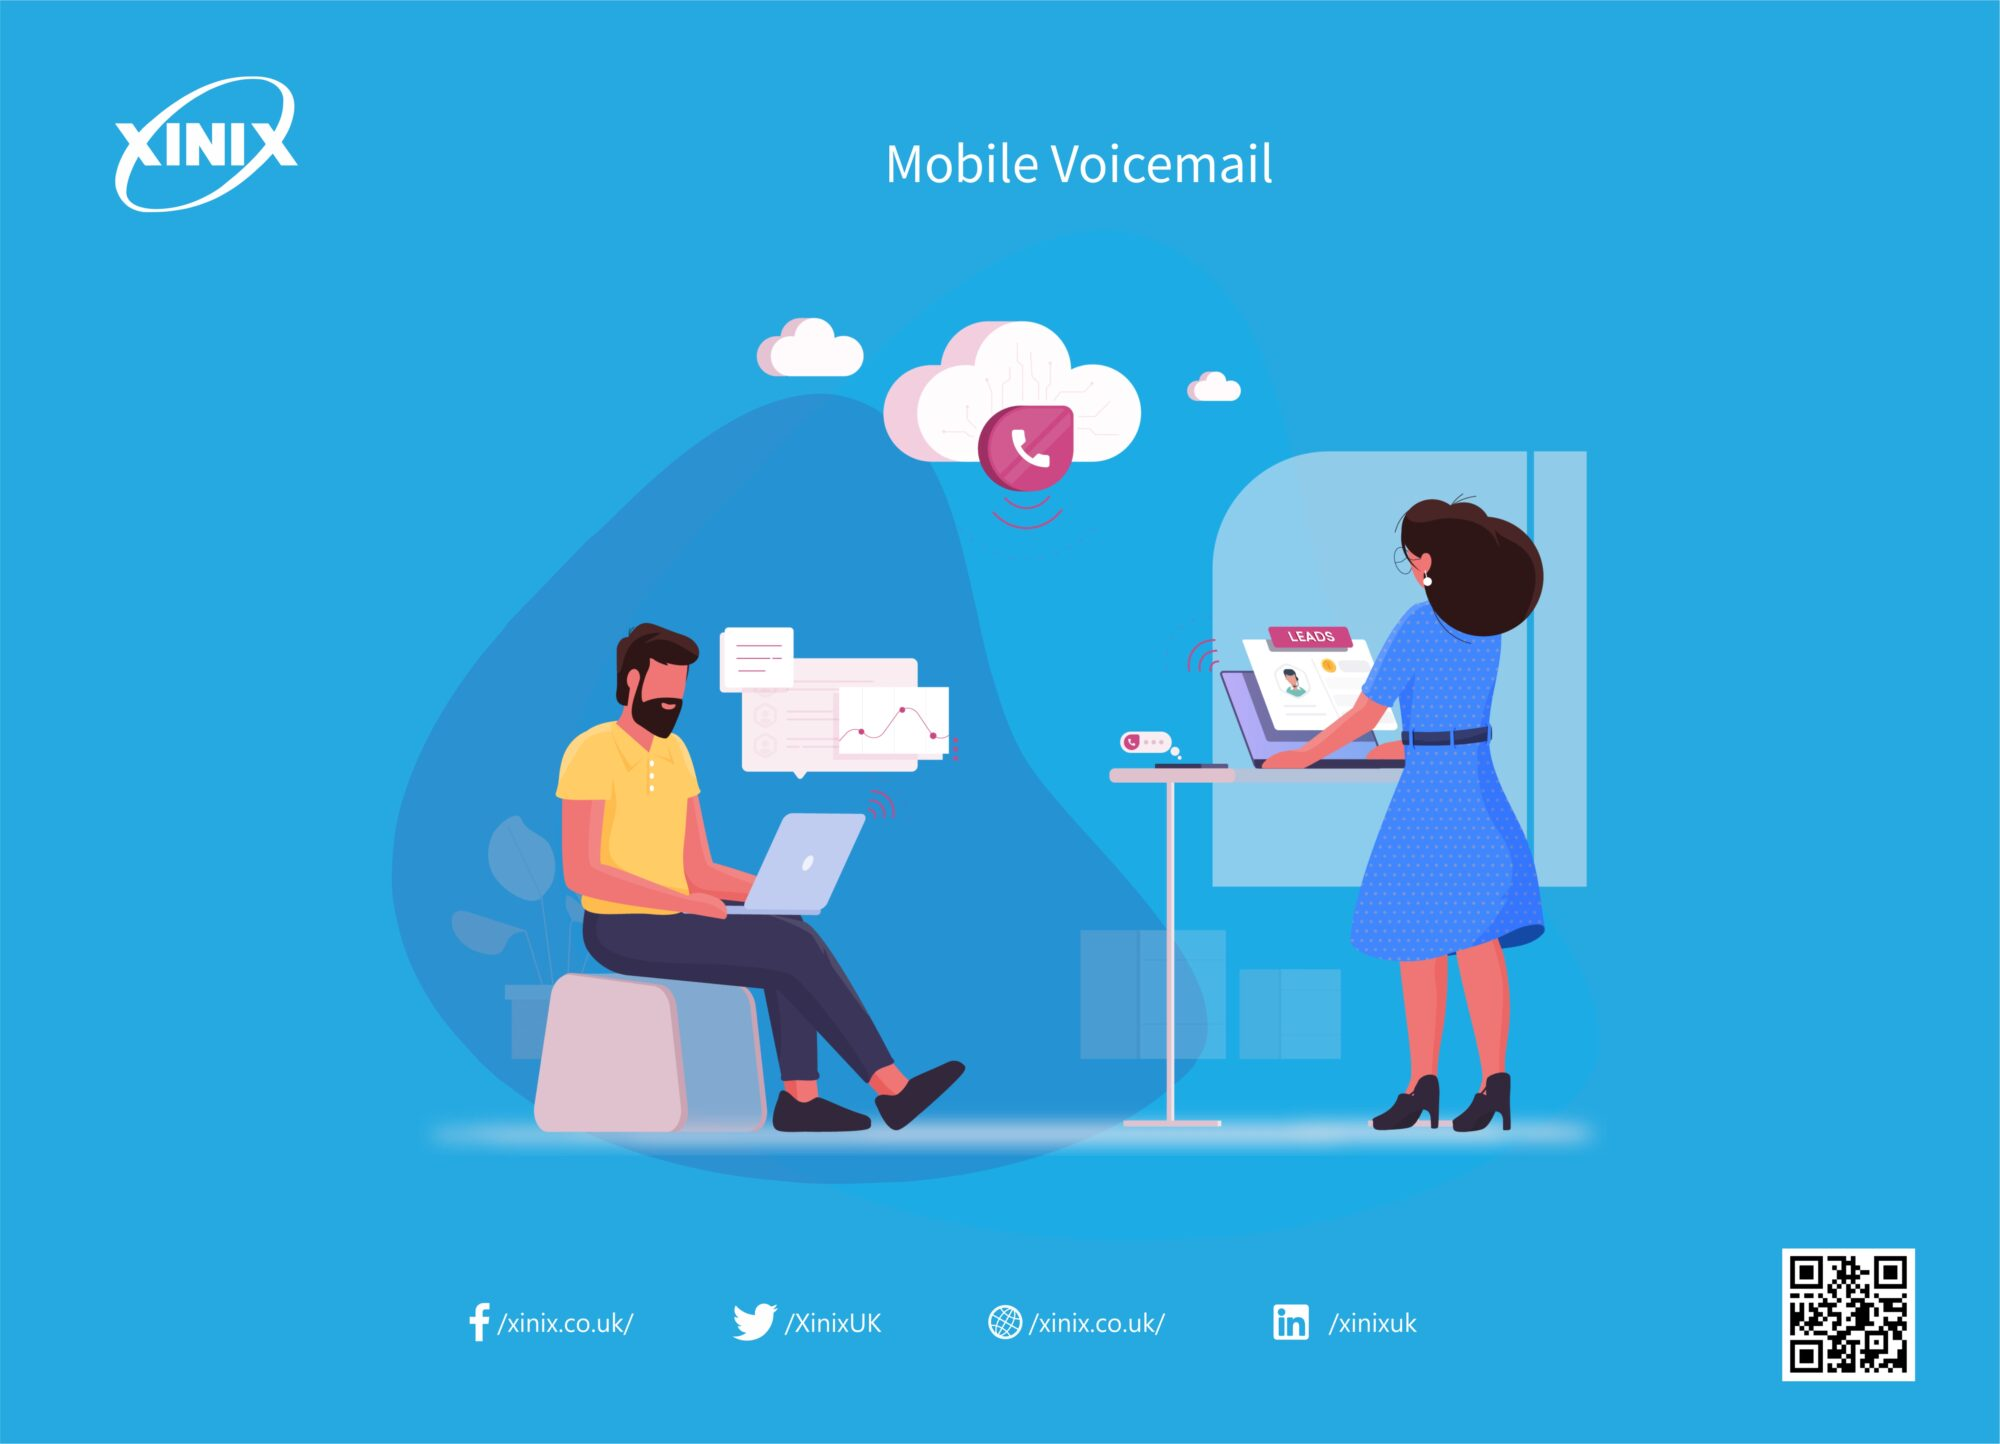 Mobile Voicemail